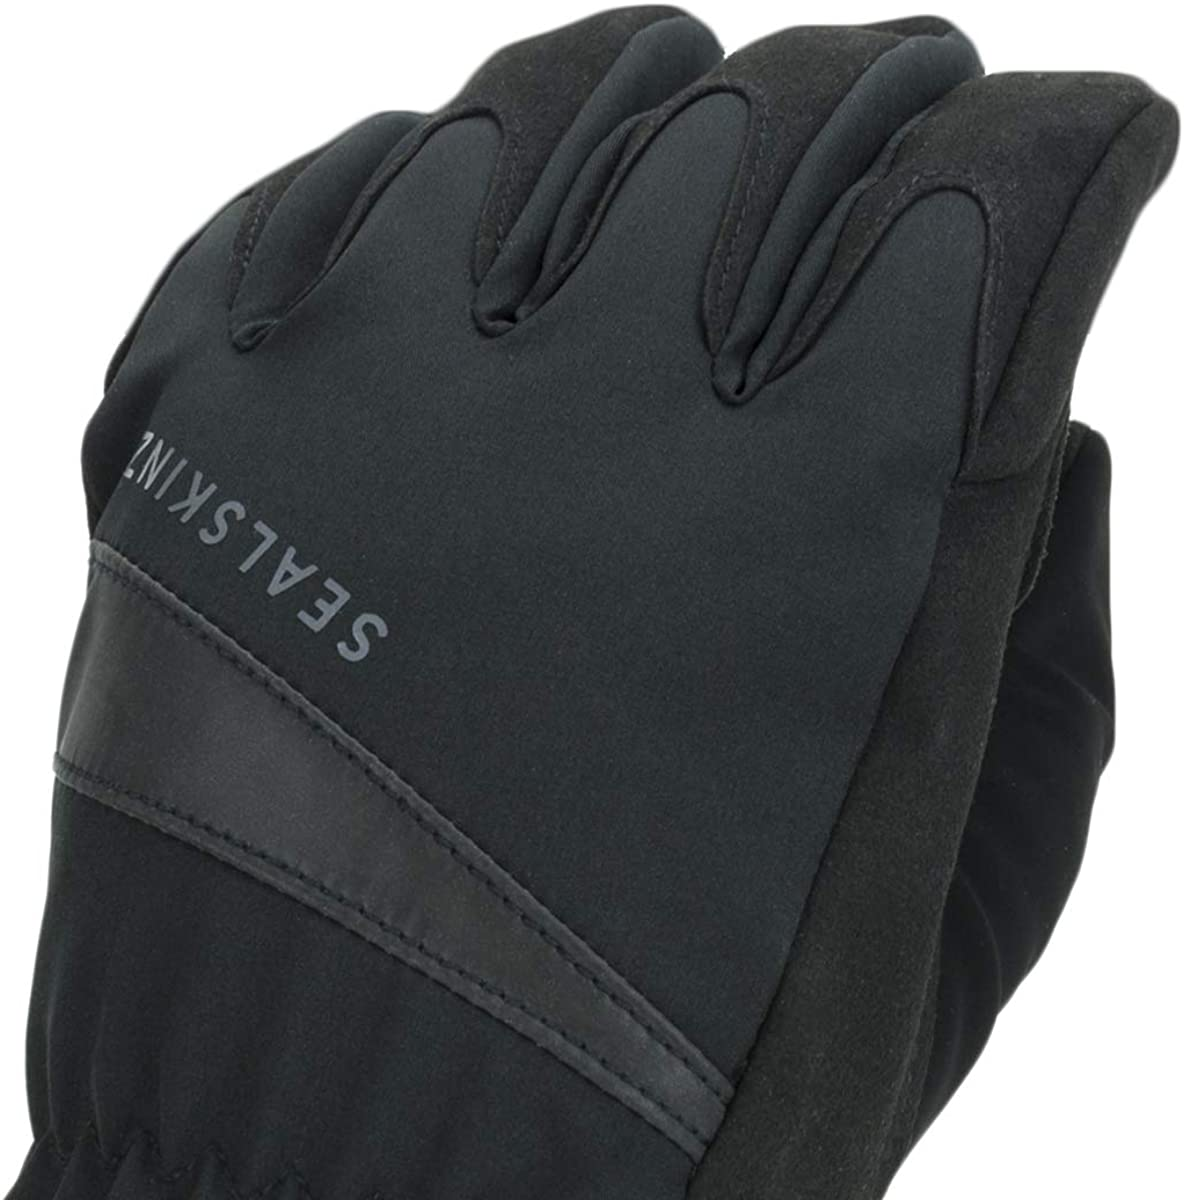 SEALSKINZ Womens Waterproof All Weather Cycle Glove